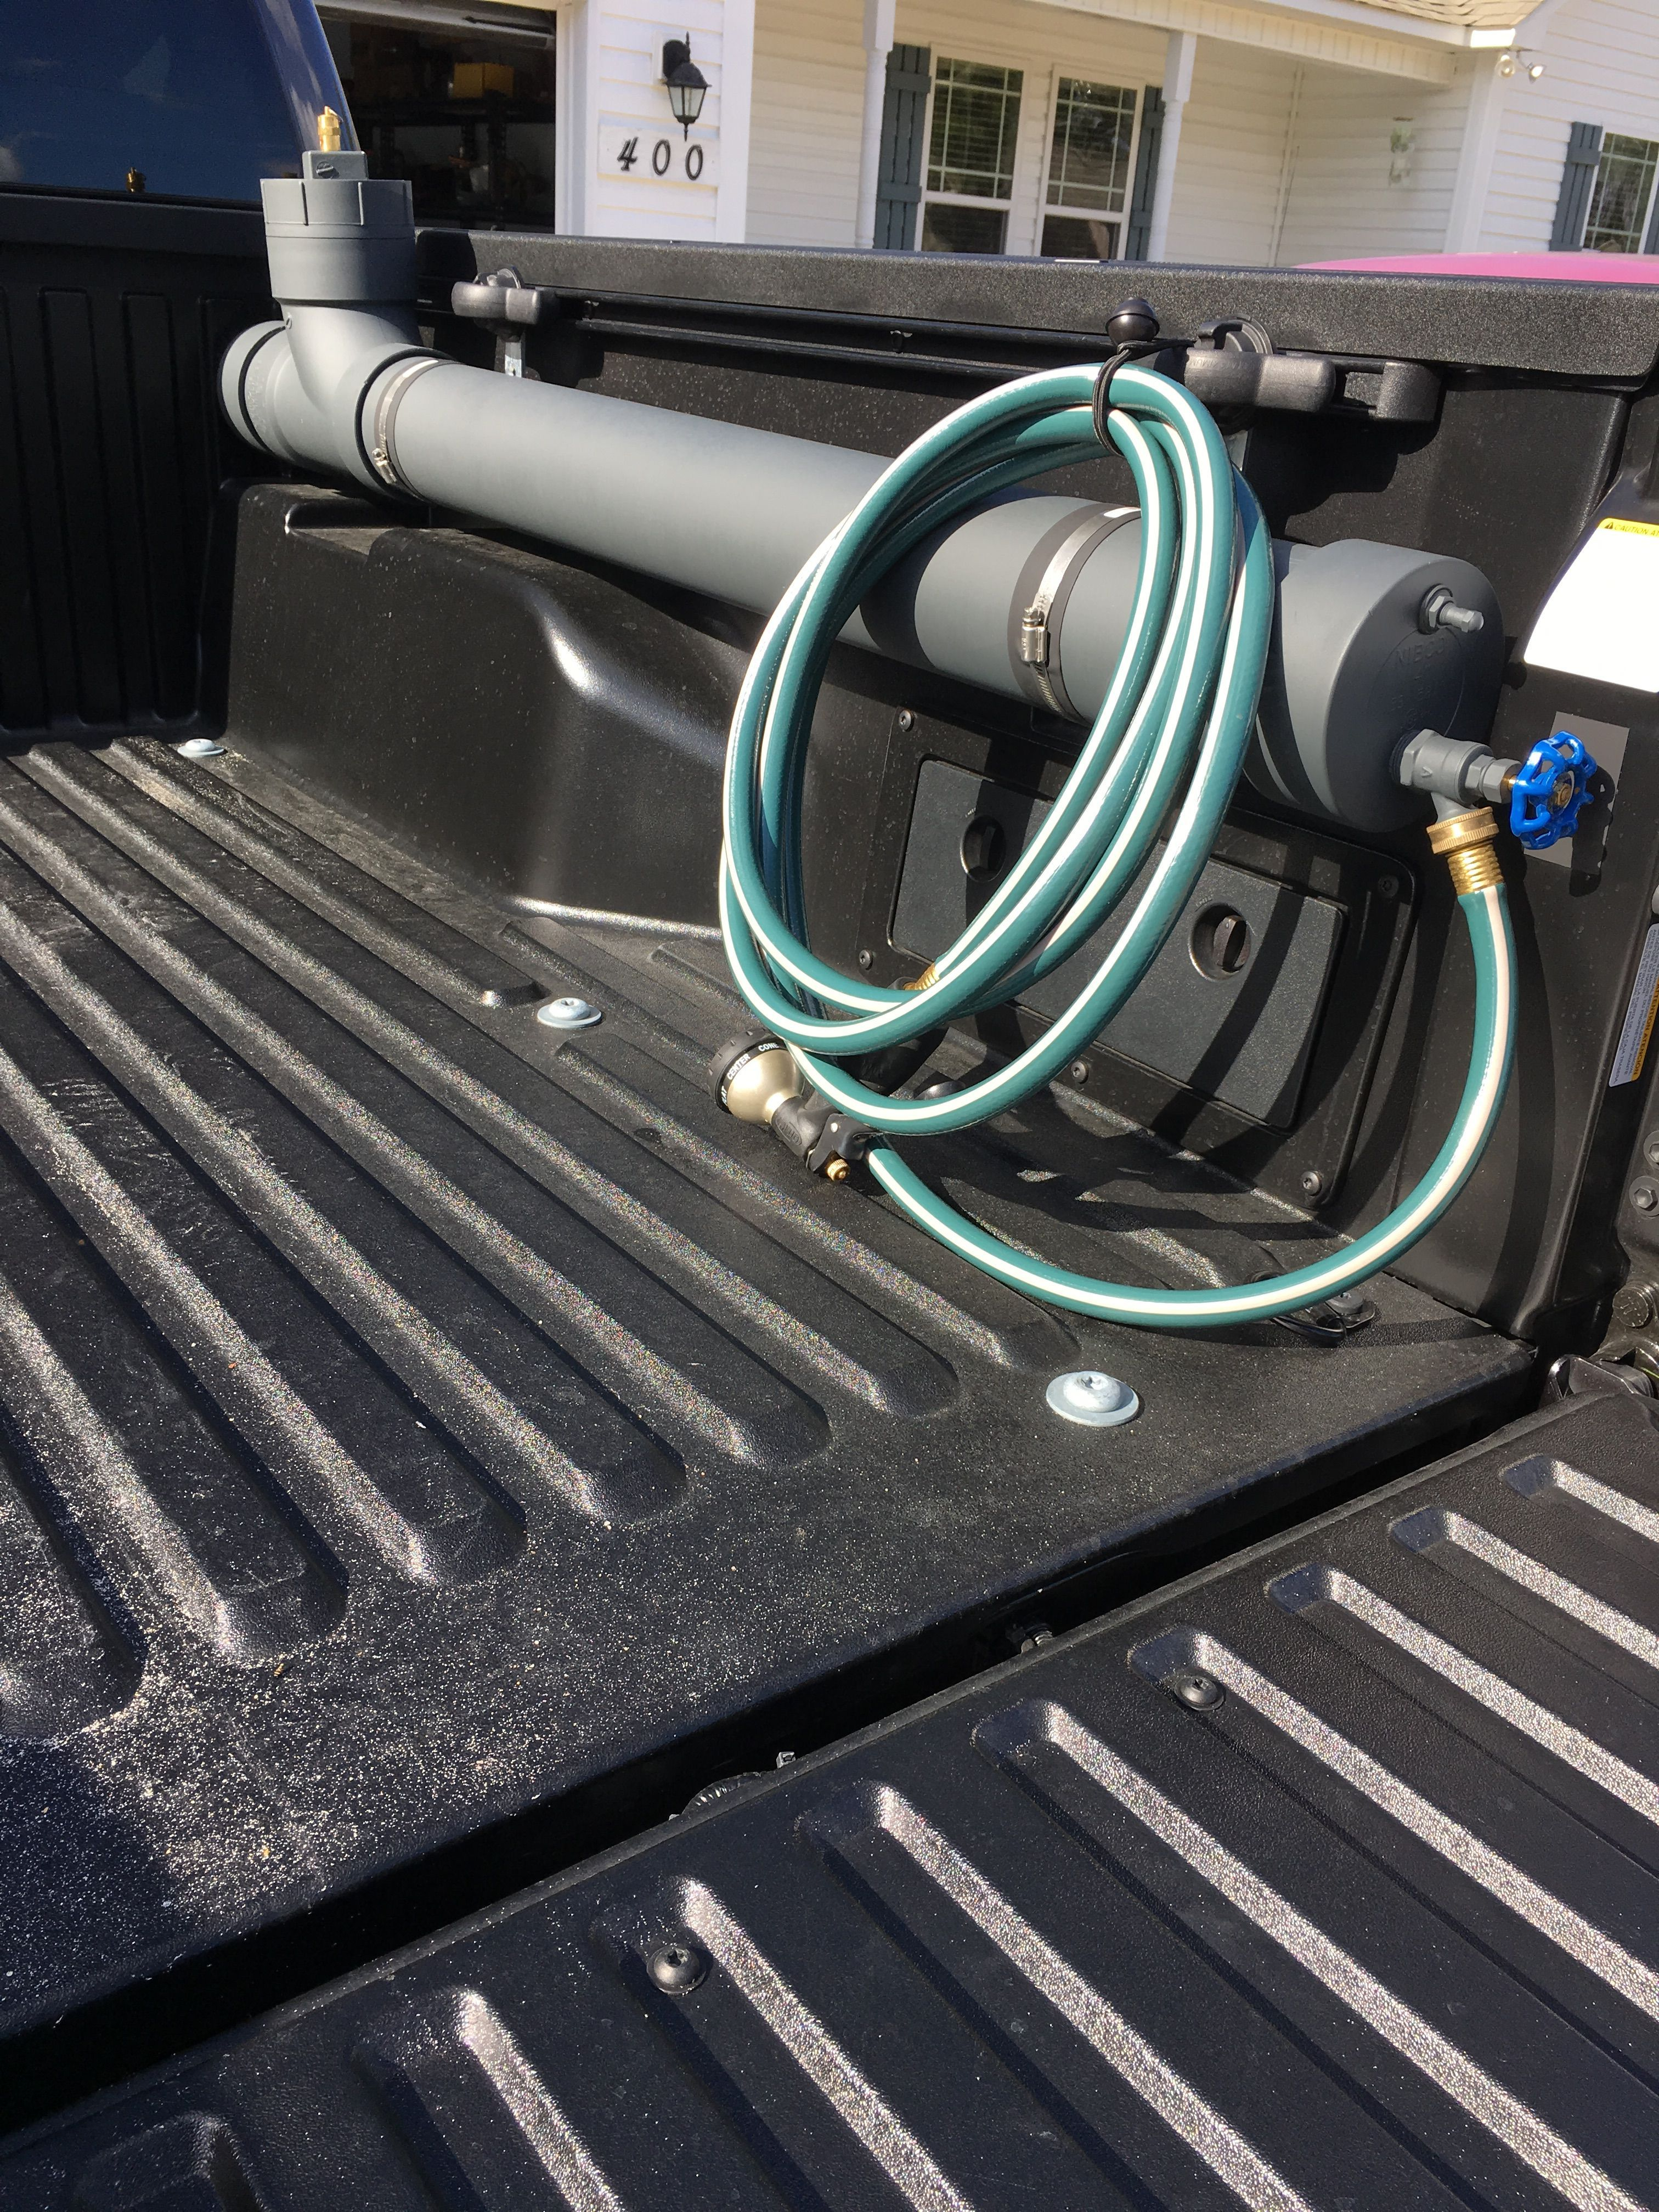 Truck bed water tank in 2020 Truck bed, Truck bed